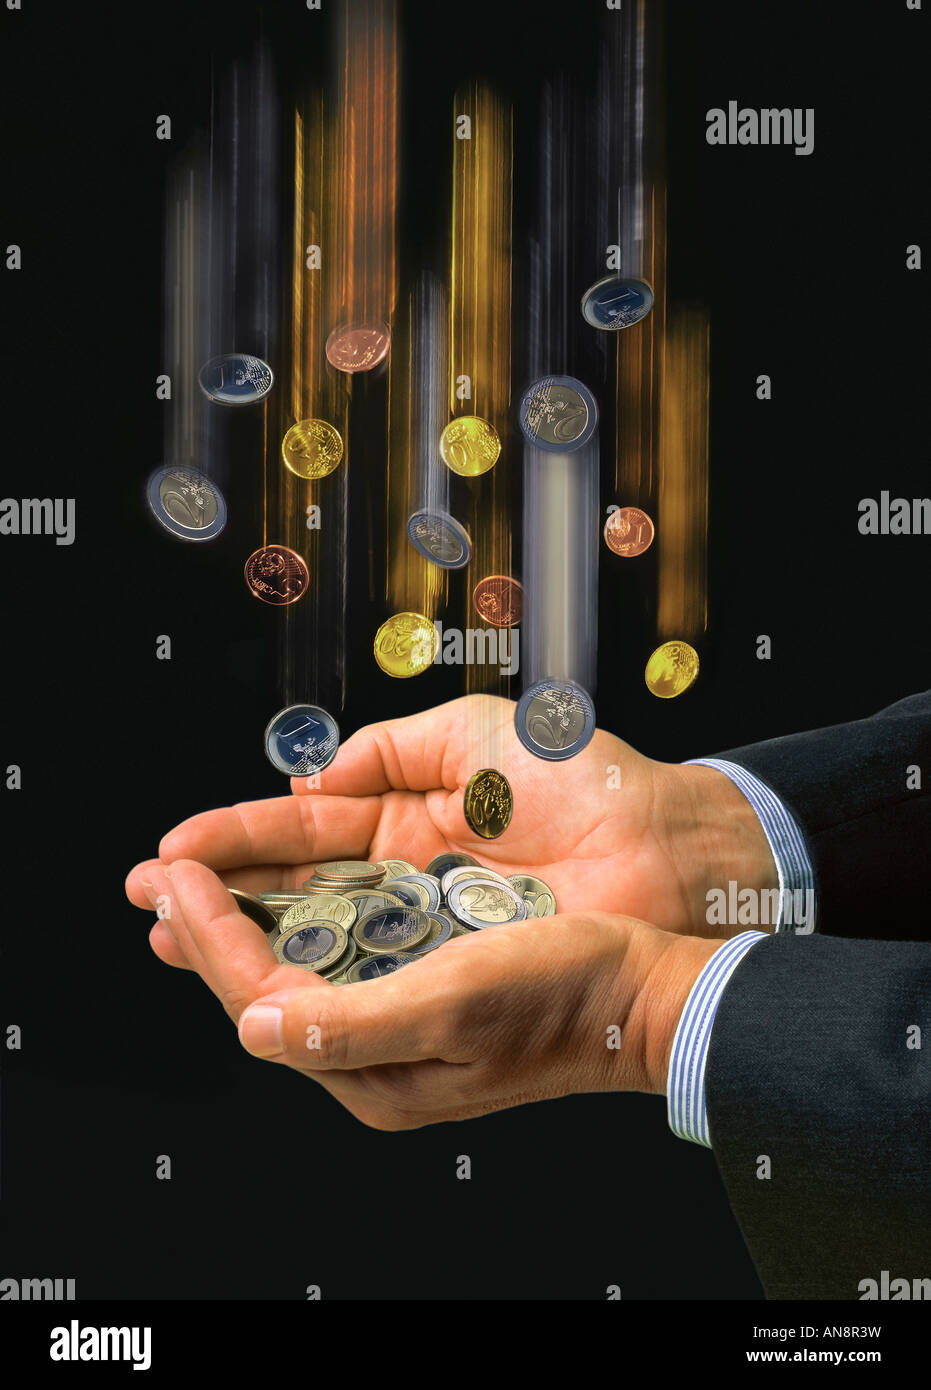 Hands catching european coins - Stock Image